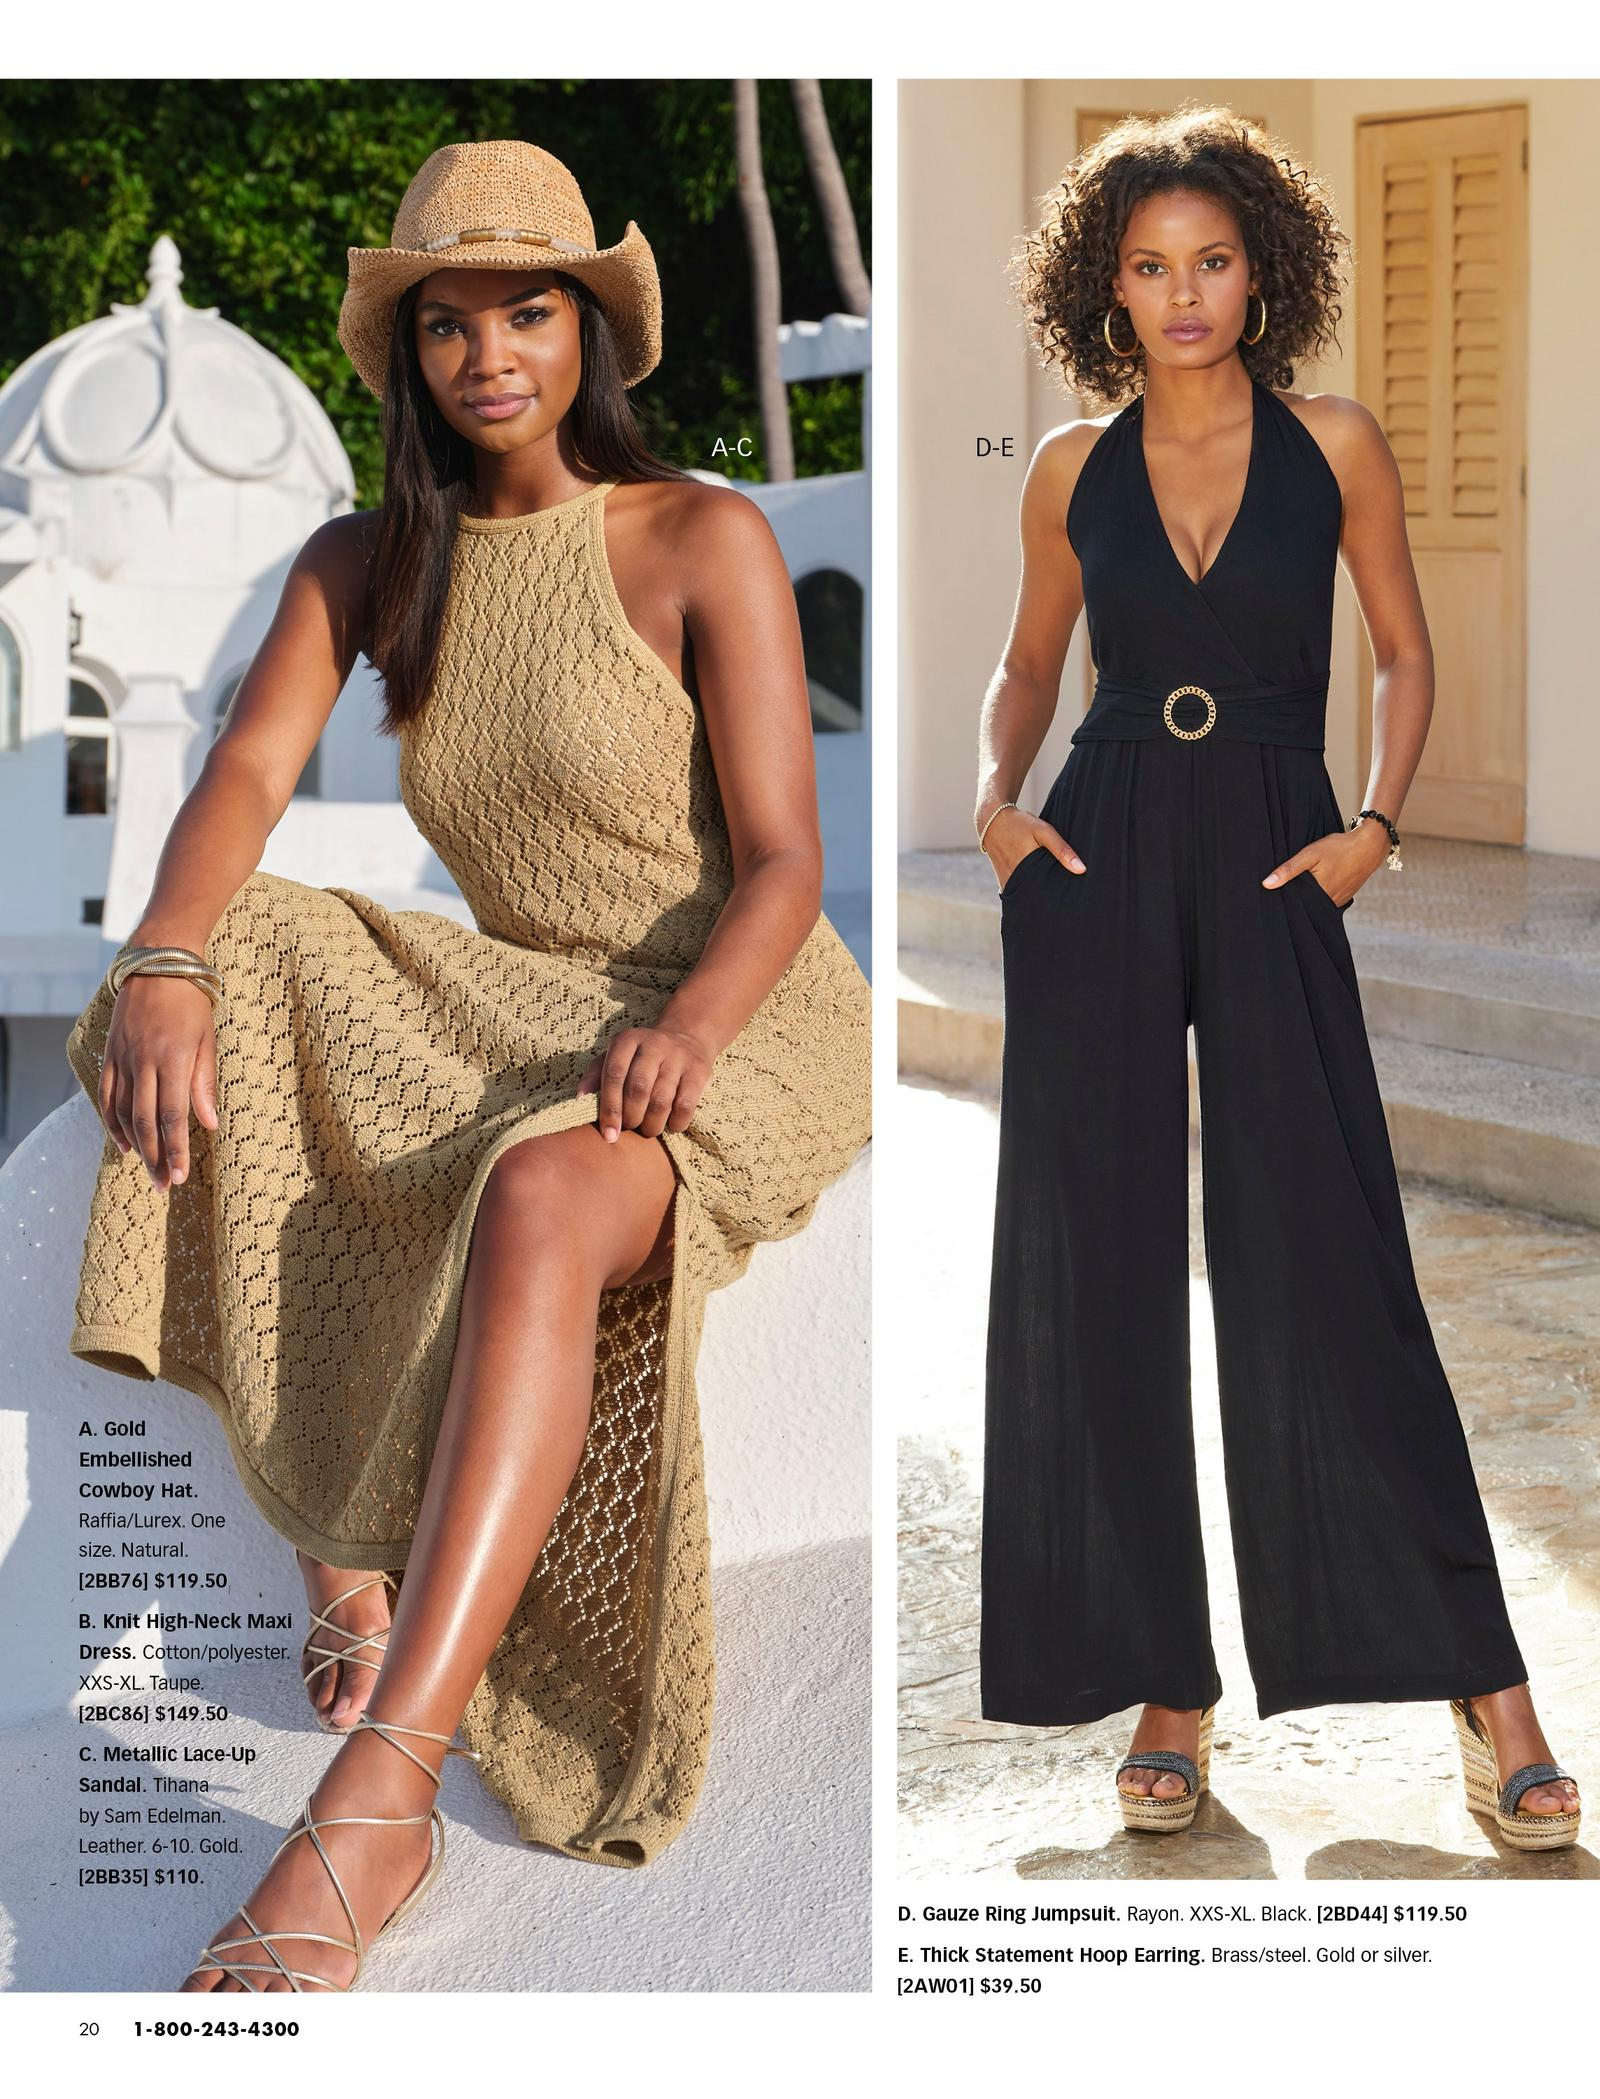 left model wearing a tan high-neck sleeveless knit maxi dress, gold lace-up sandals, and a gold embellished straw hat. right model wearing a ring detail black jumpsuit and black wedges.